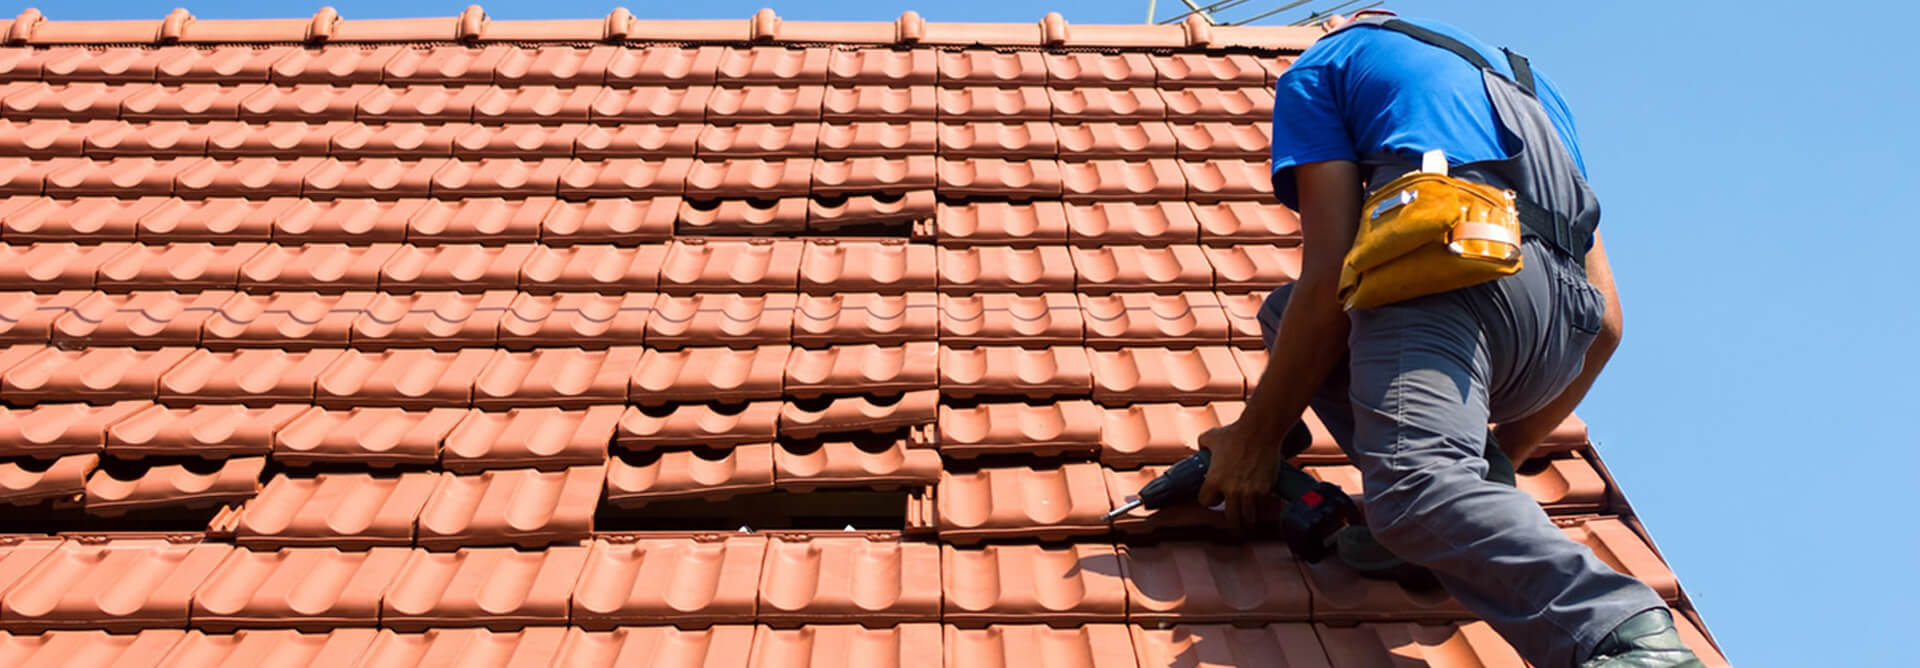 4 Timely & Affordable Adelaide Roof Repair Tips for Residents